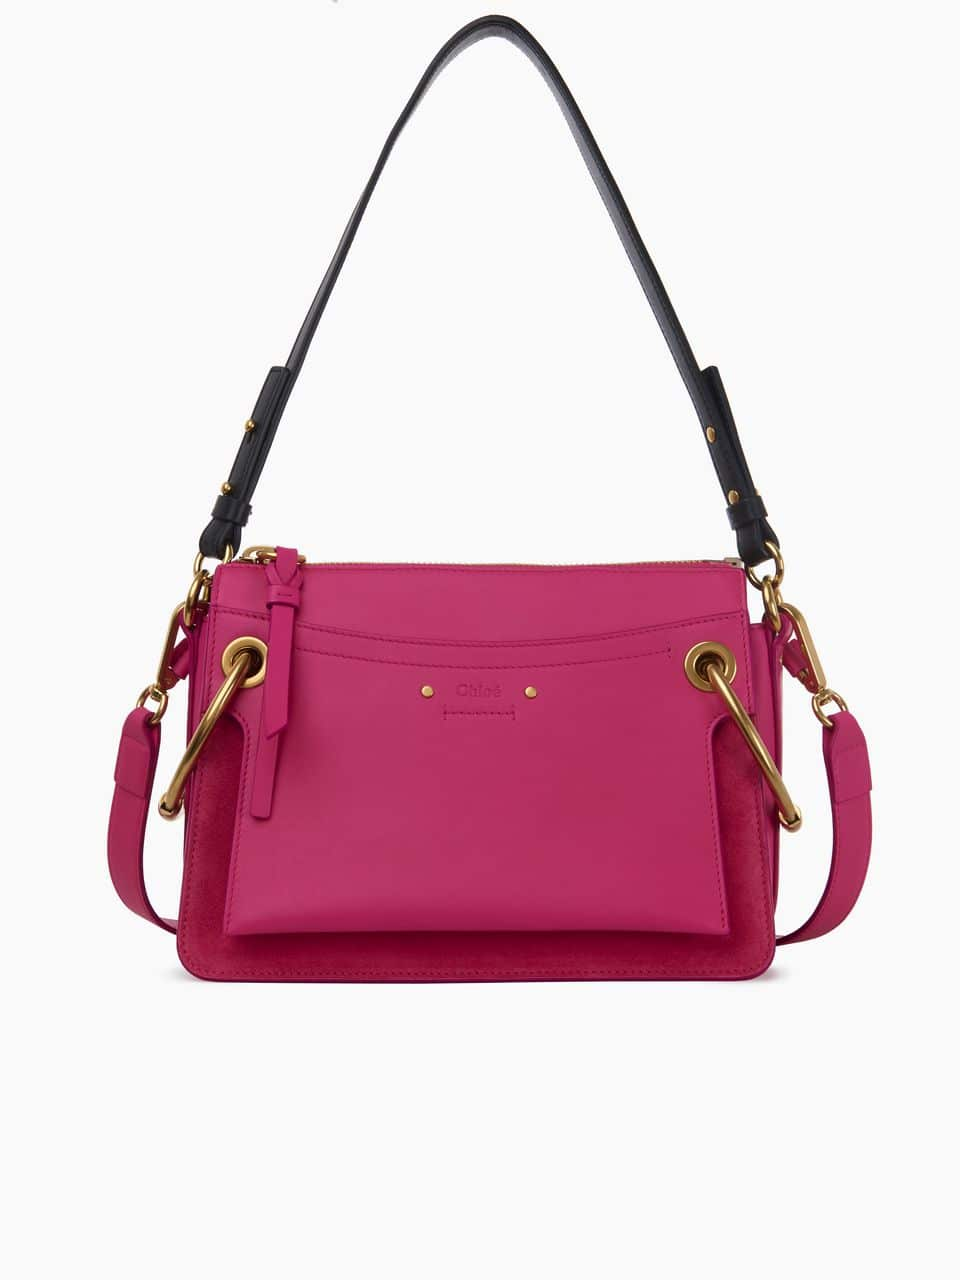 1d346aab8435 Chloe Pink Leather Suede Roy Small Bag